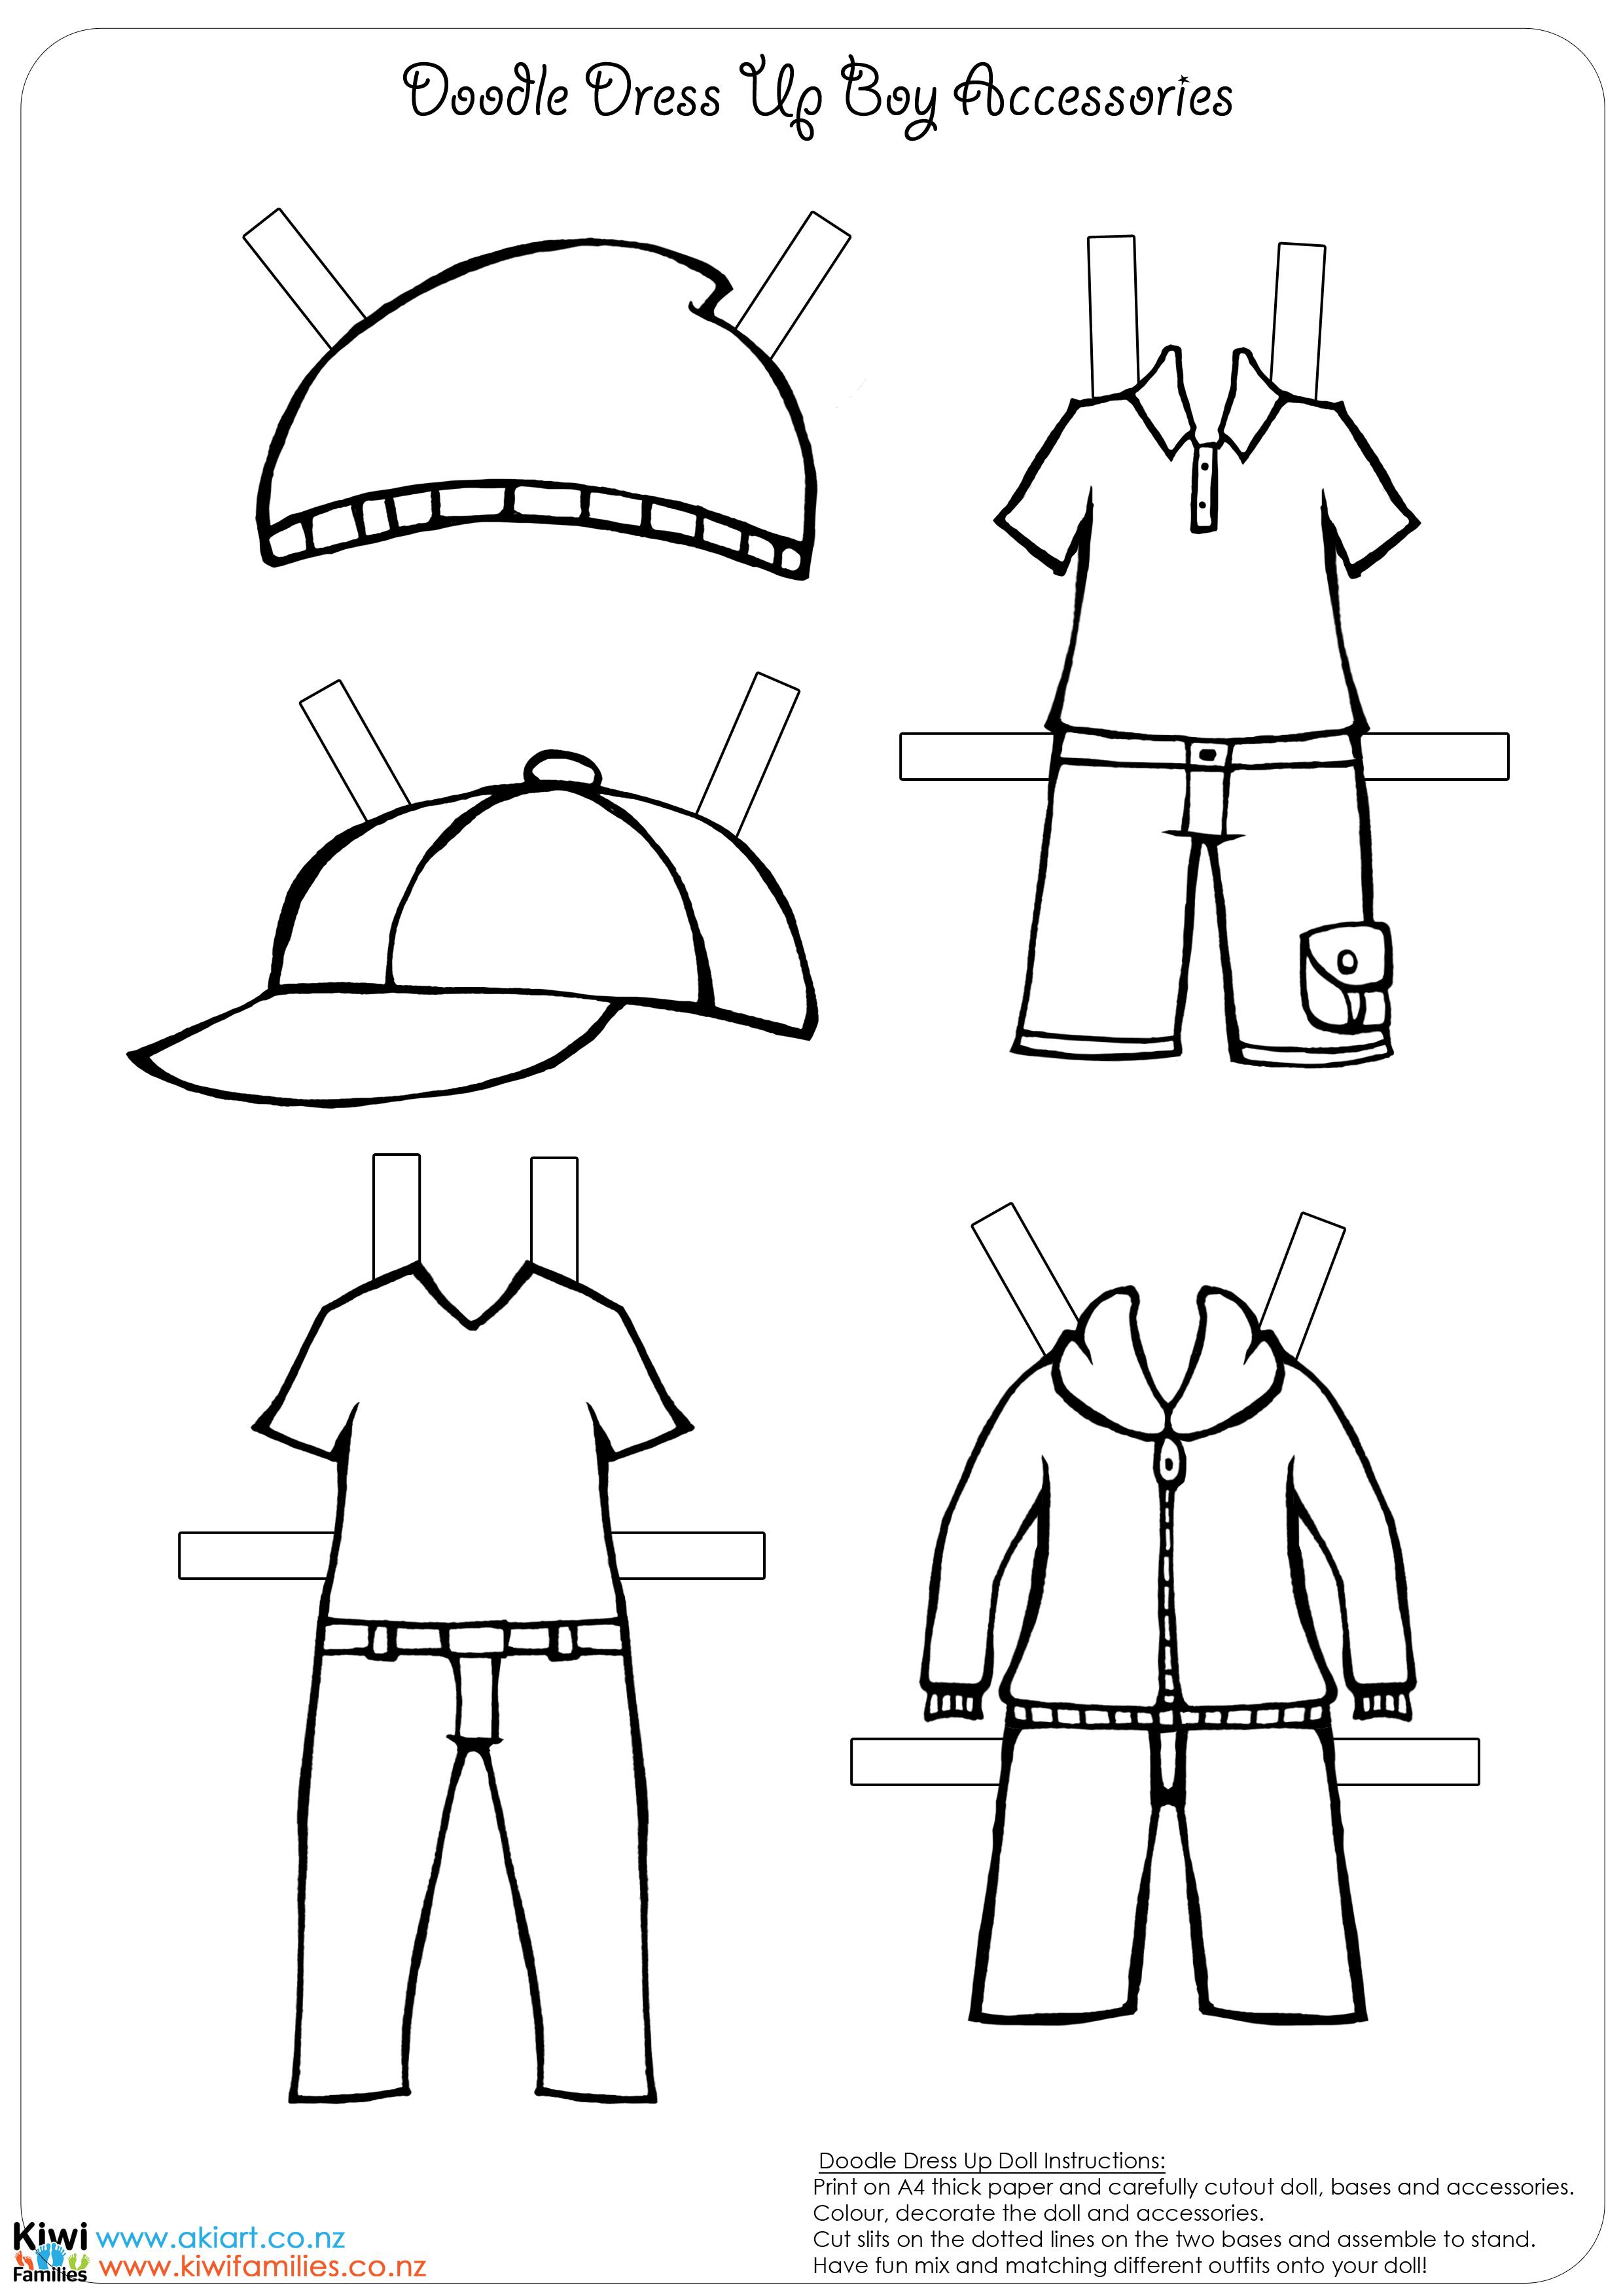 dress up dolls printable clothes worksheet to print printable worksheets and dolls dress up printable